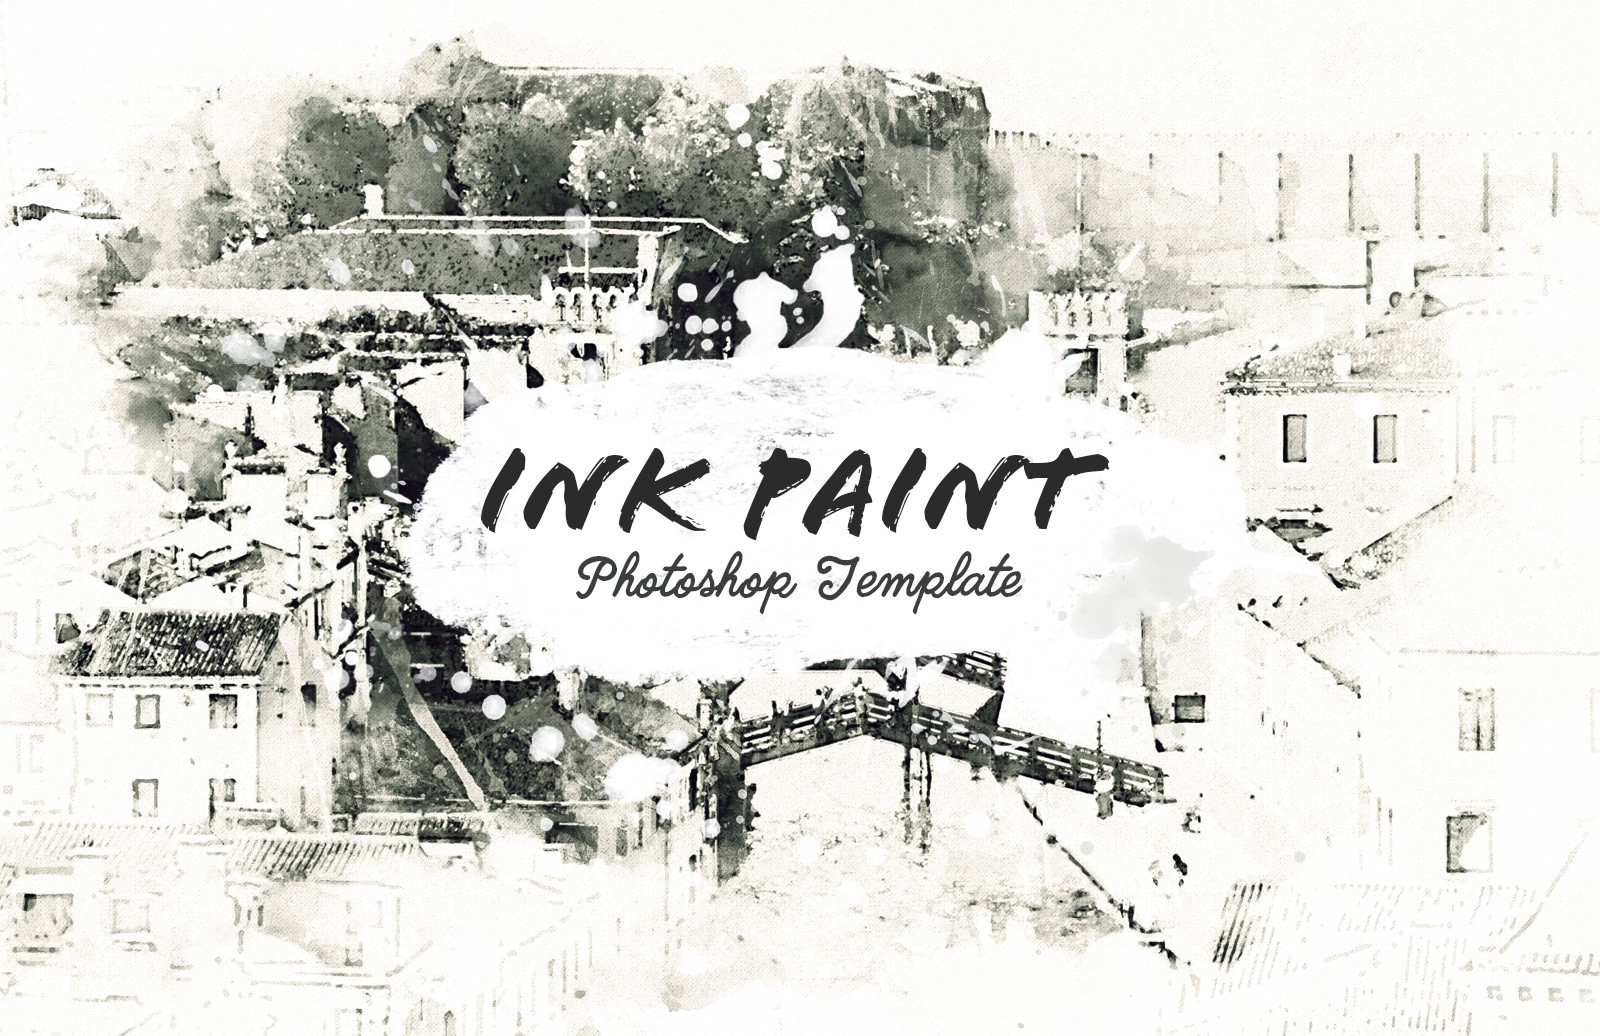 Ink Paint Photoshop Template Preview 1